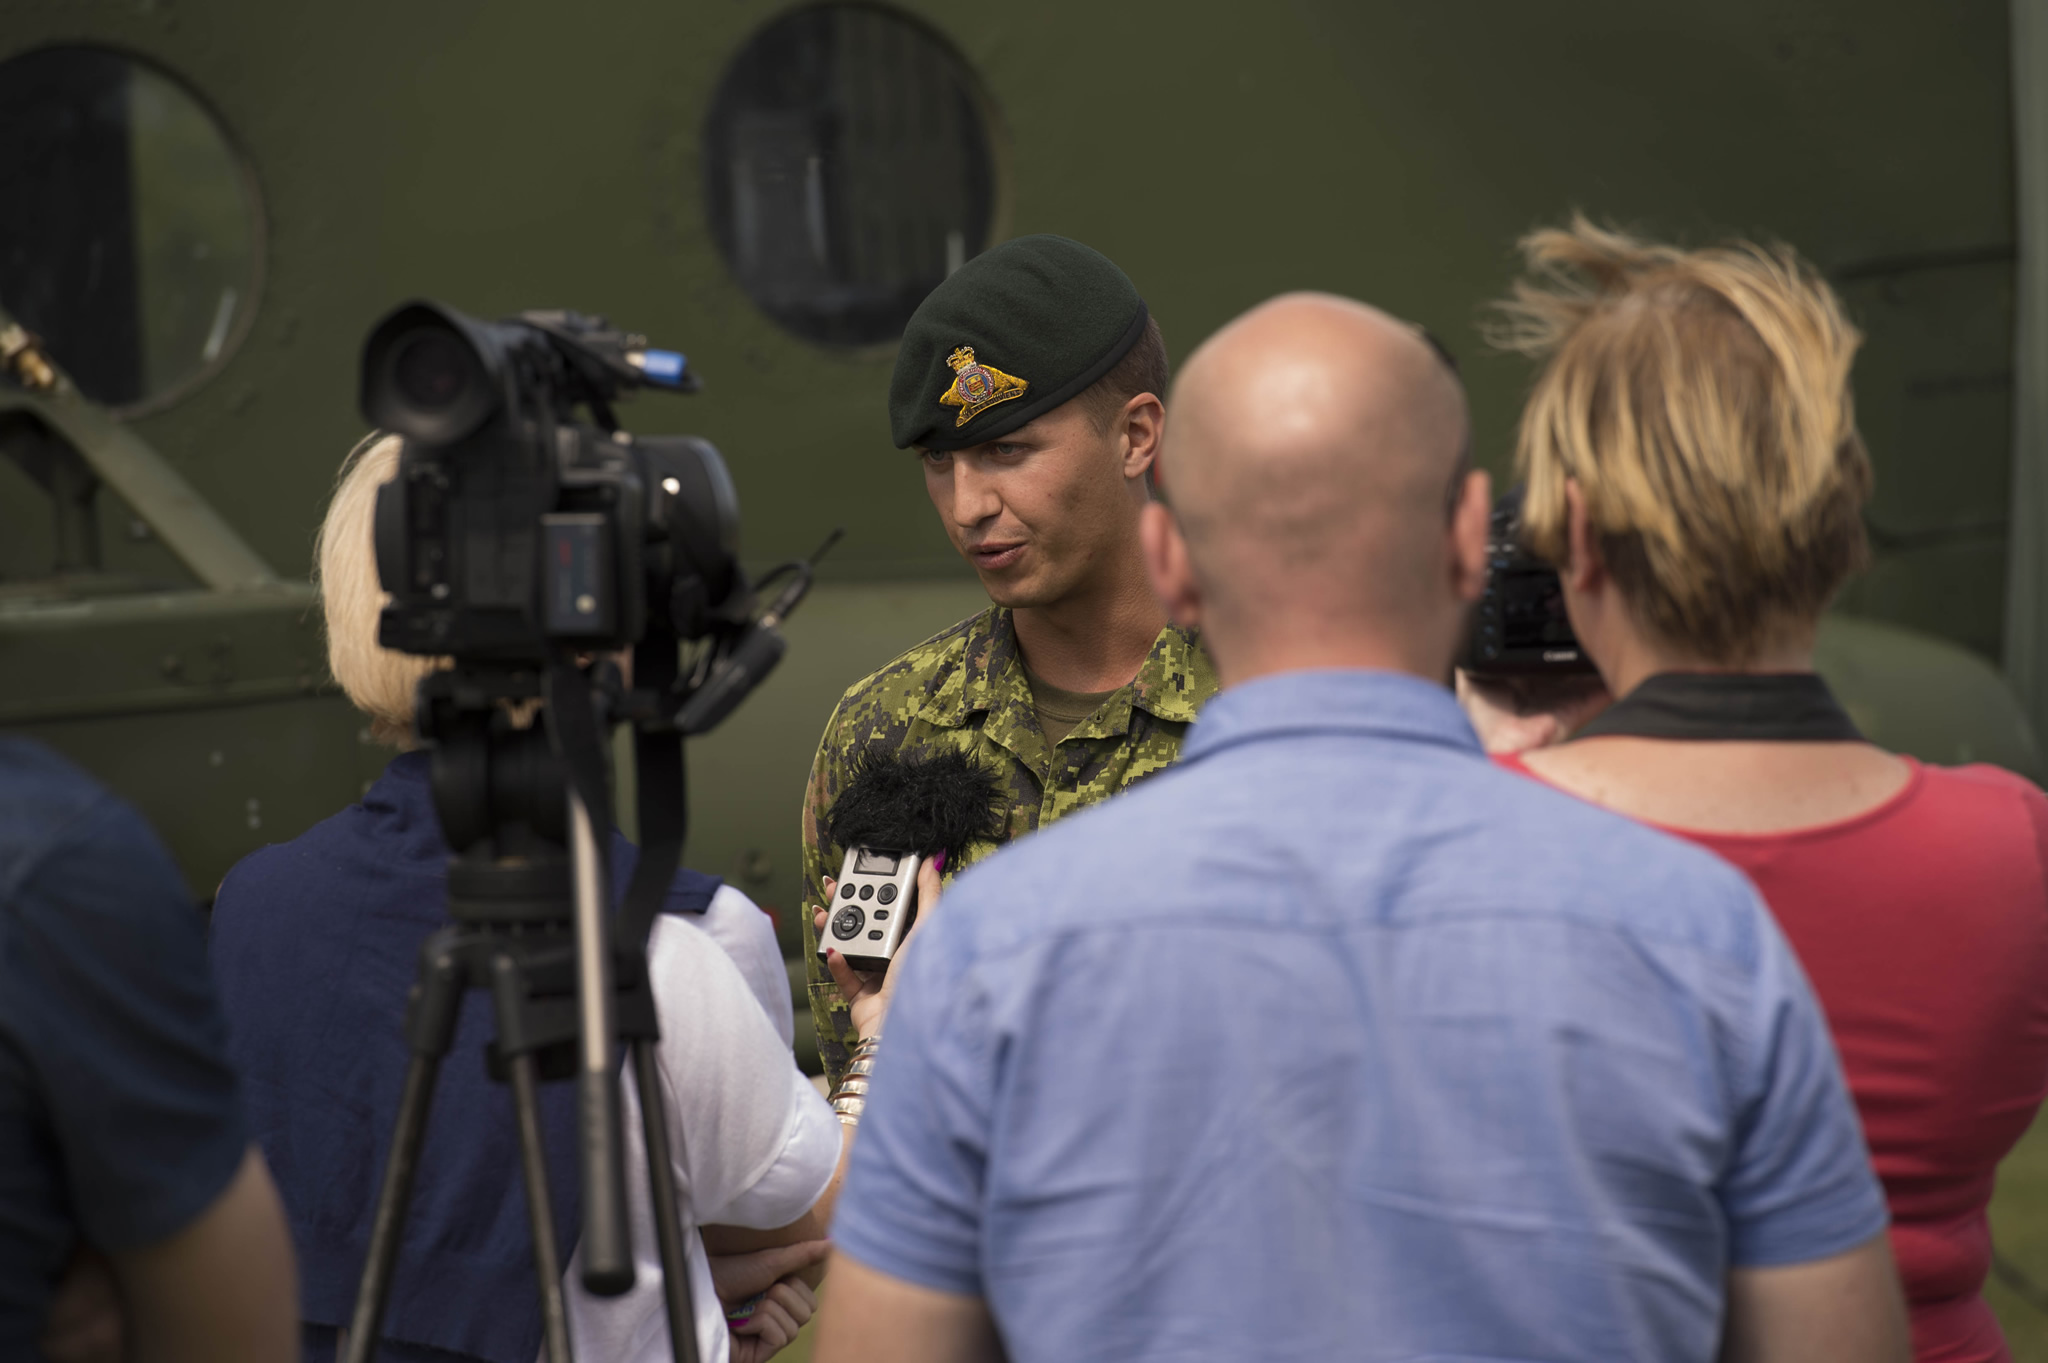 A soldier speaks to media members in front of a camera